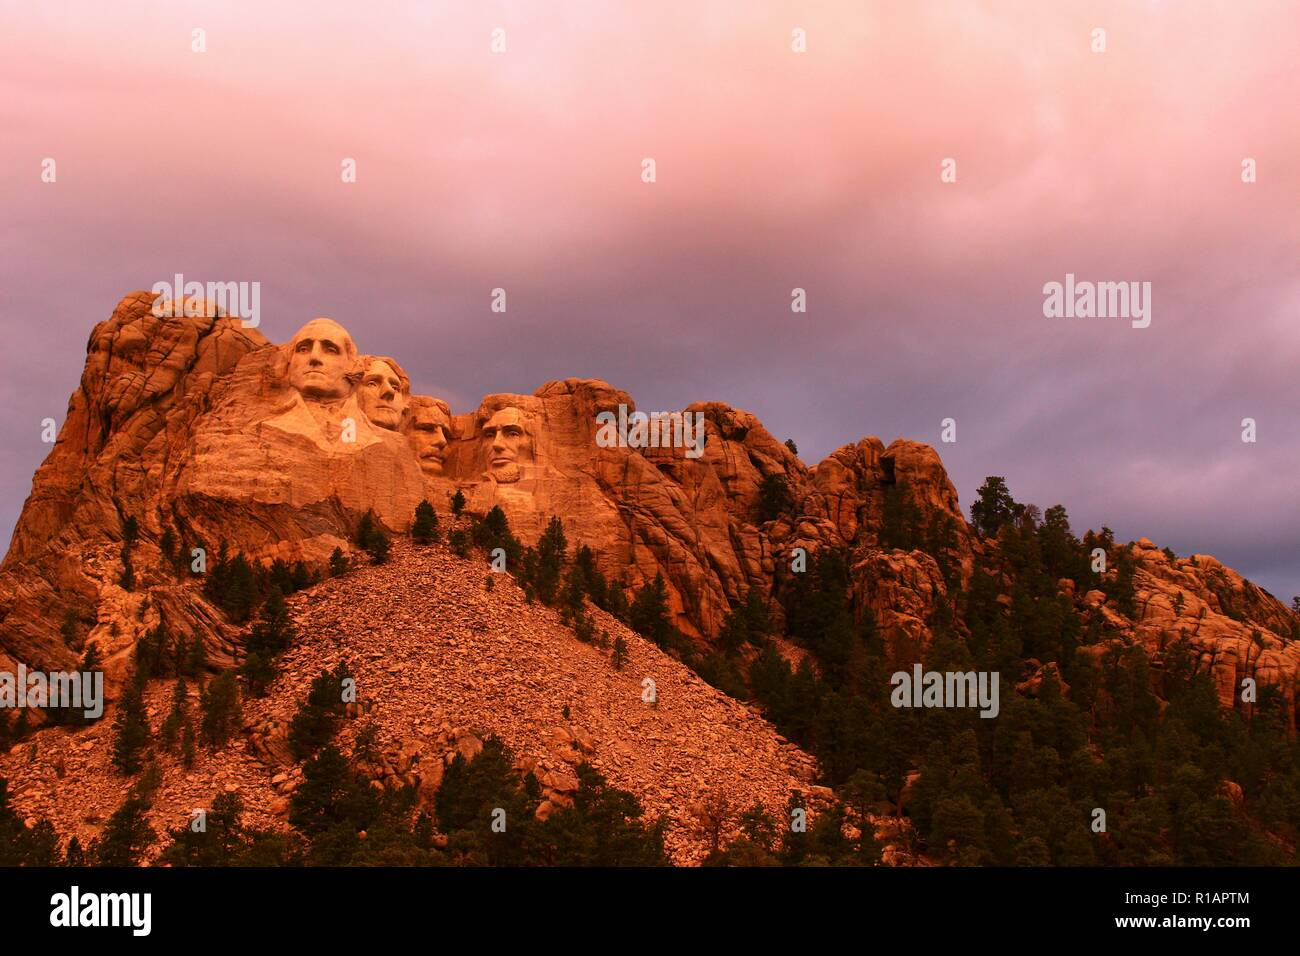 Mount Rushmore in the South Dakota Black Hills National Forest. Summertime with the warm glow of an early evening sun shining on the president's faces Stock Photo